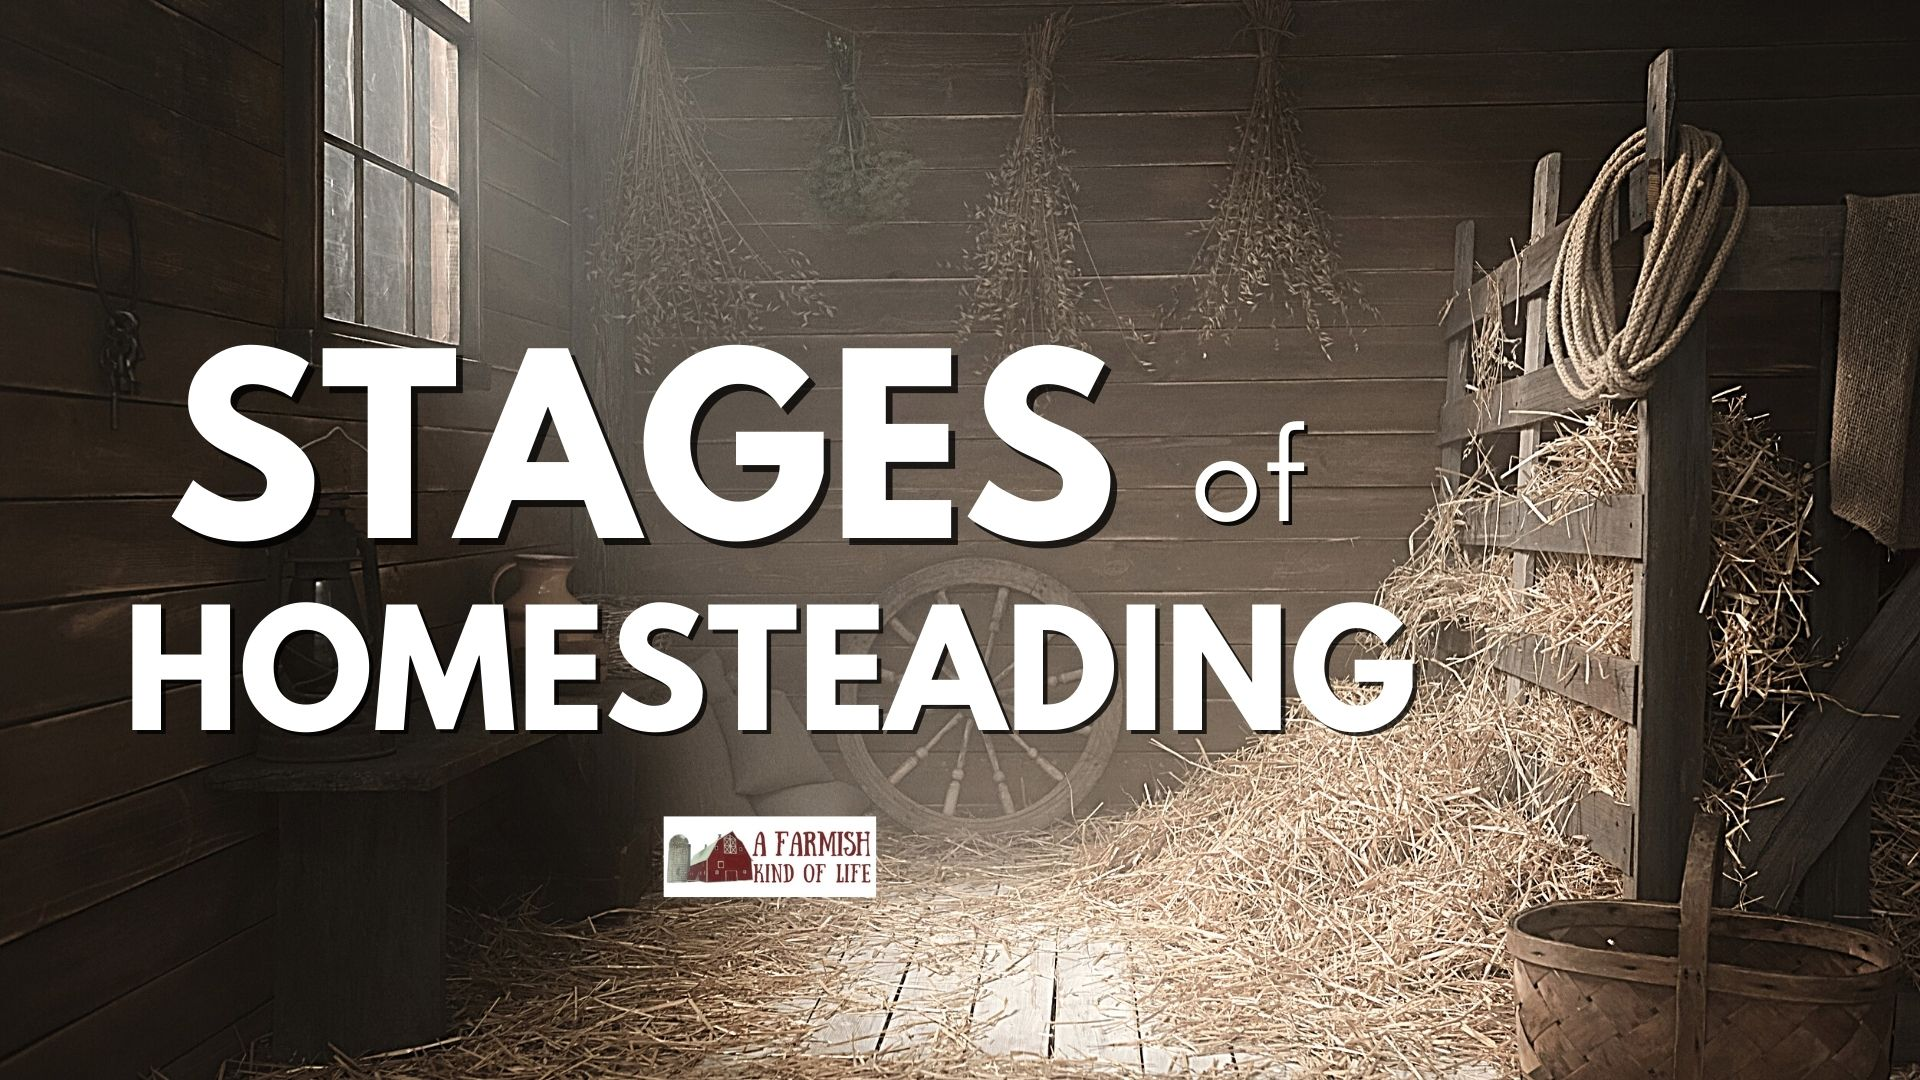 157: Stages of Homesteading